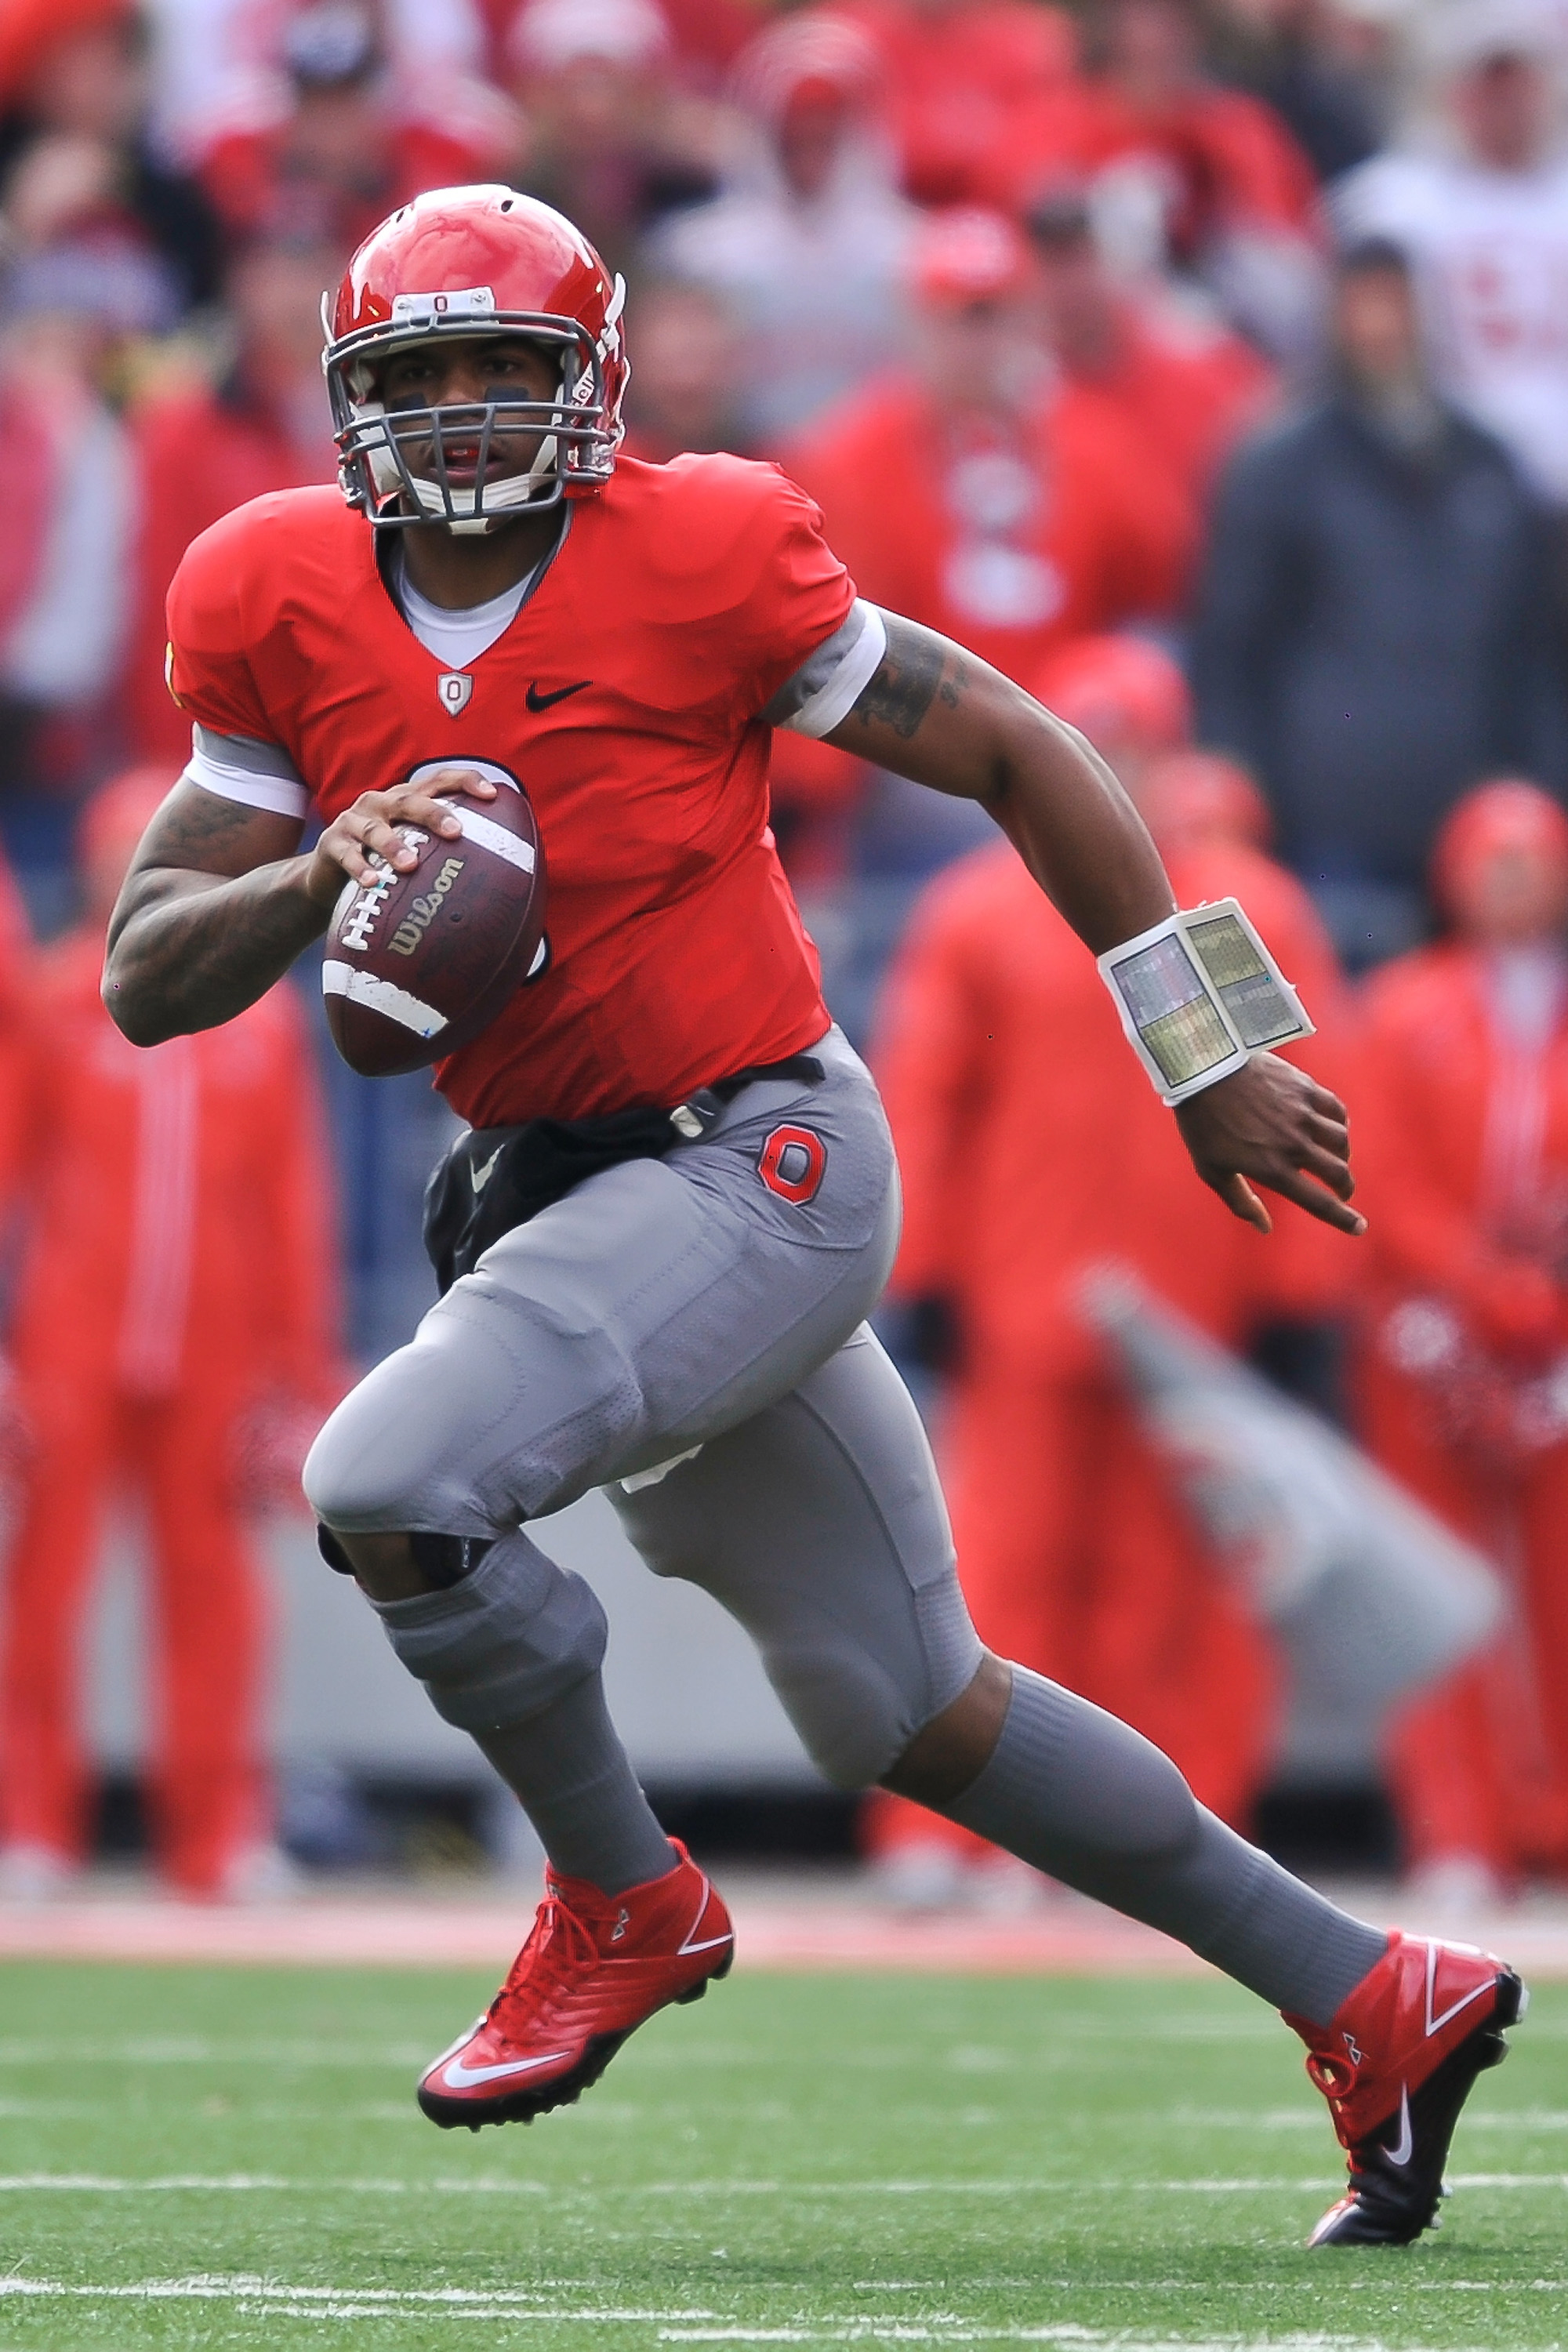 COLUMBUS, OH - NOVEMBER 27:  Quarterback Terrelle Pryor #2 of the Ohio State Buckeyes rolls out of the pocket against the Michigan Wolverines at Ohio Stadium on November 27, 2010 in Columbus, Ohio.  (Photo by Jamie Sabau/Getty Images)